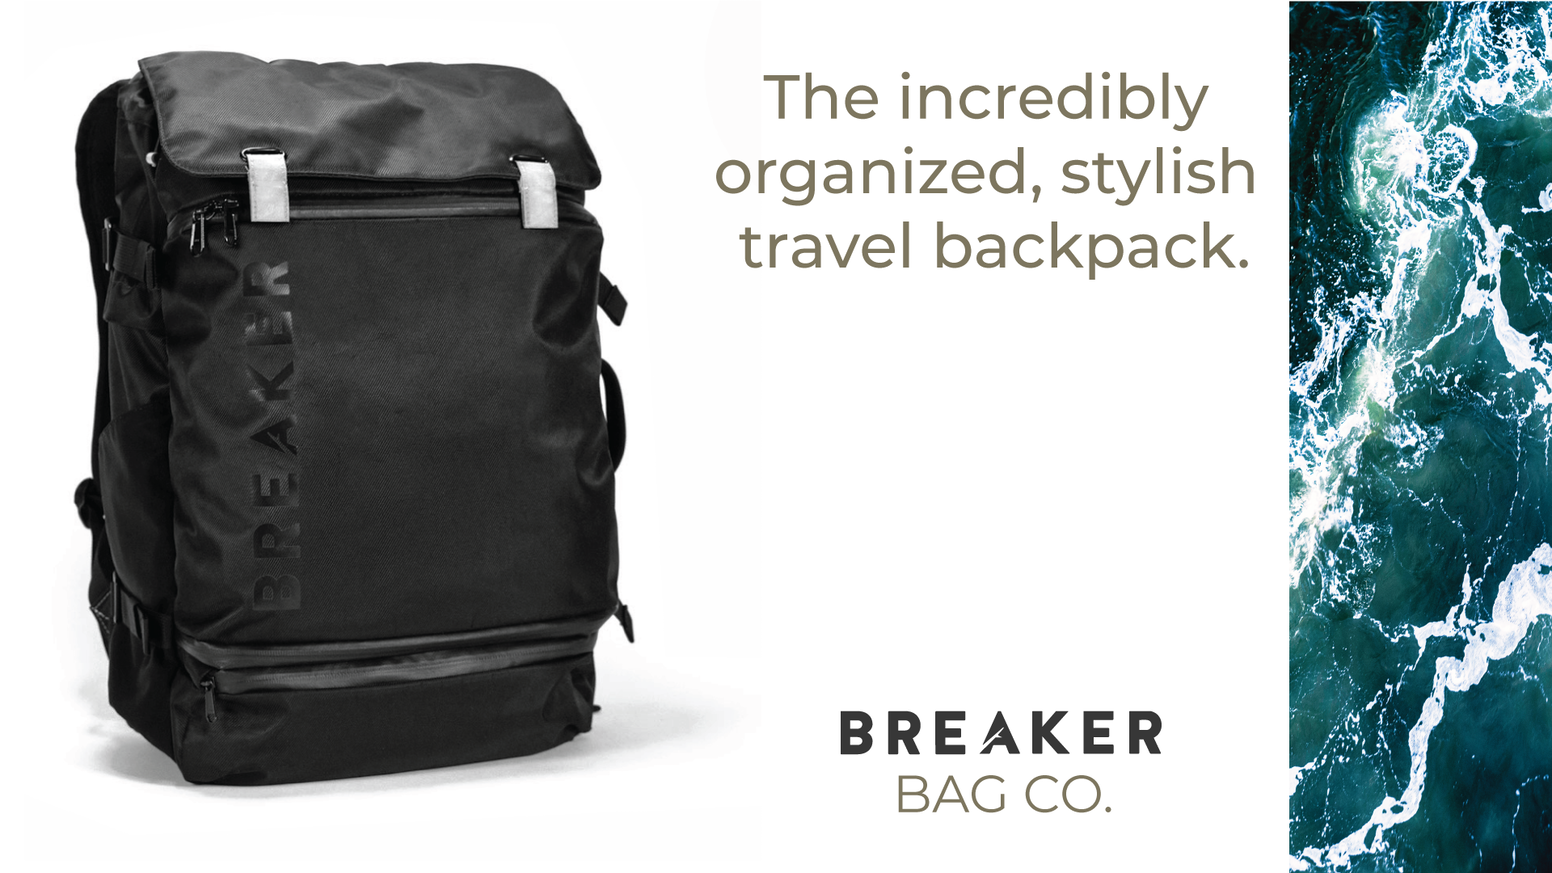 Giving the world a comfortable, organized, and well designed travel backpack to create the best experience for you and your stuff.